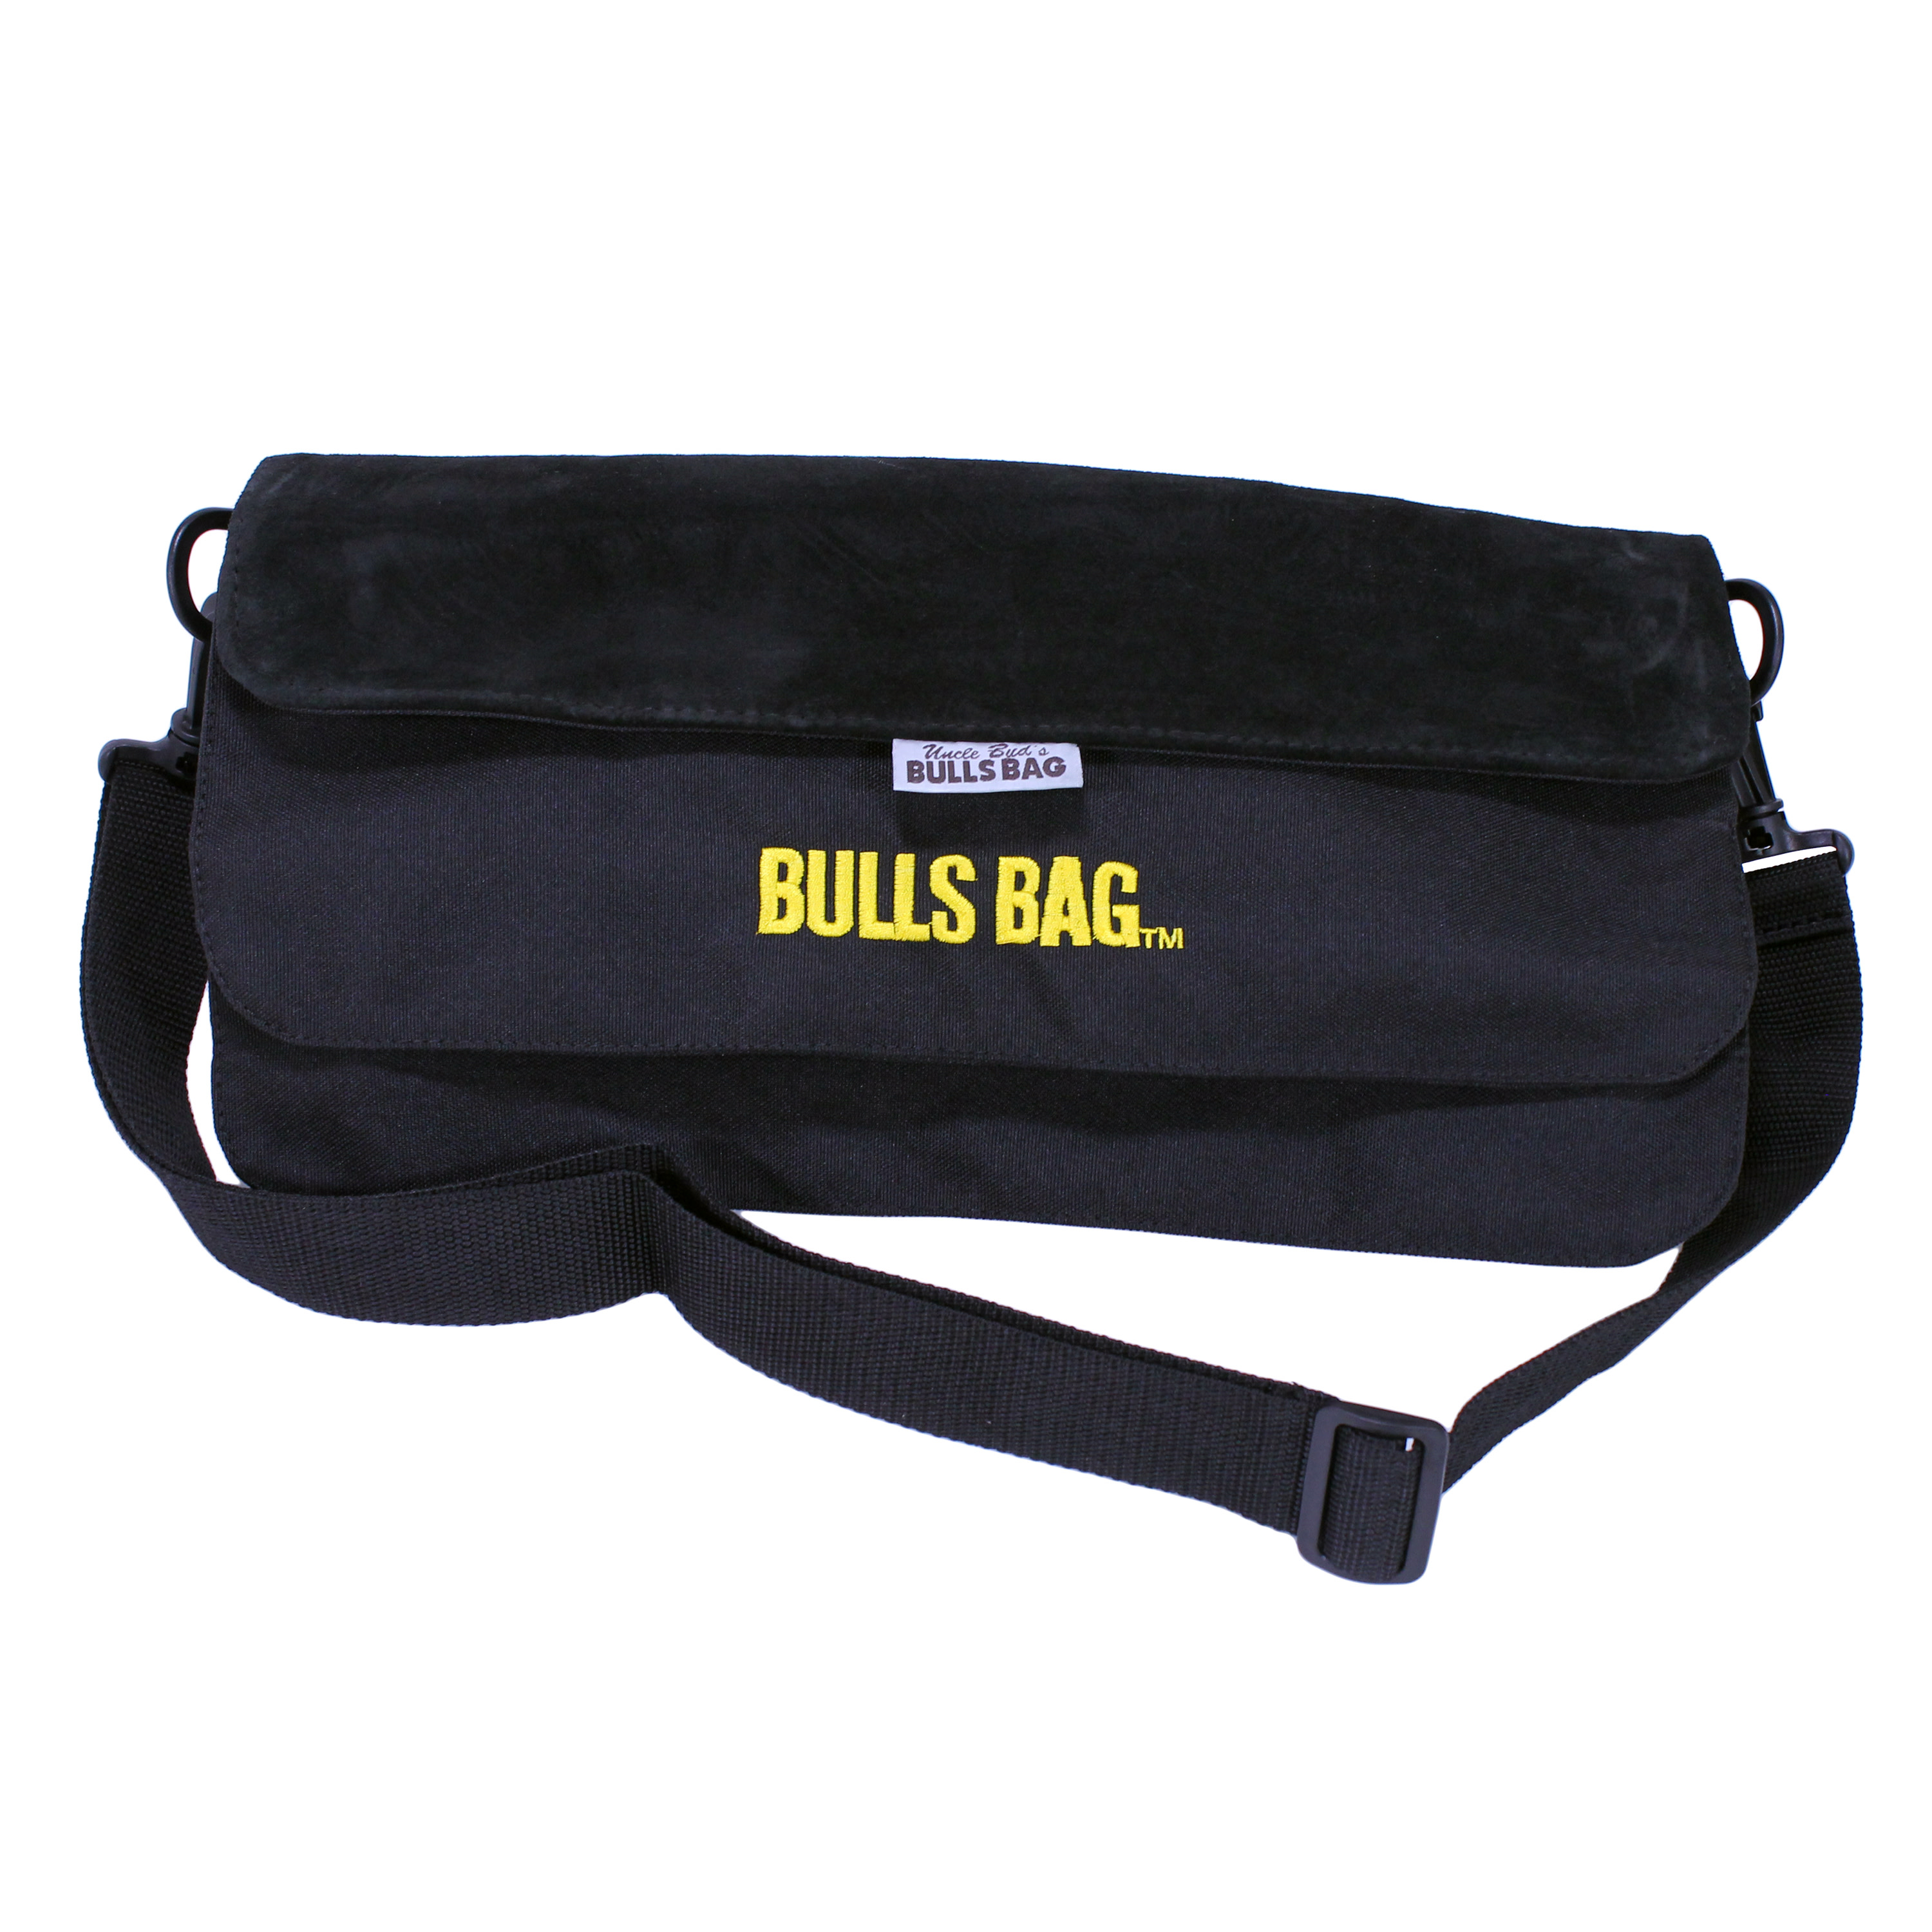 Bulls Bag Bench Shooting Rest - 15